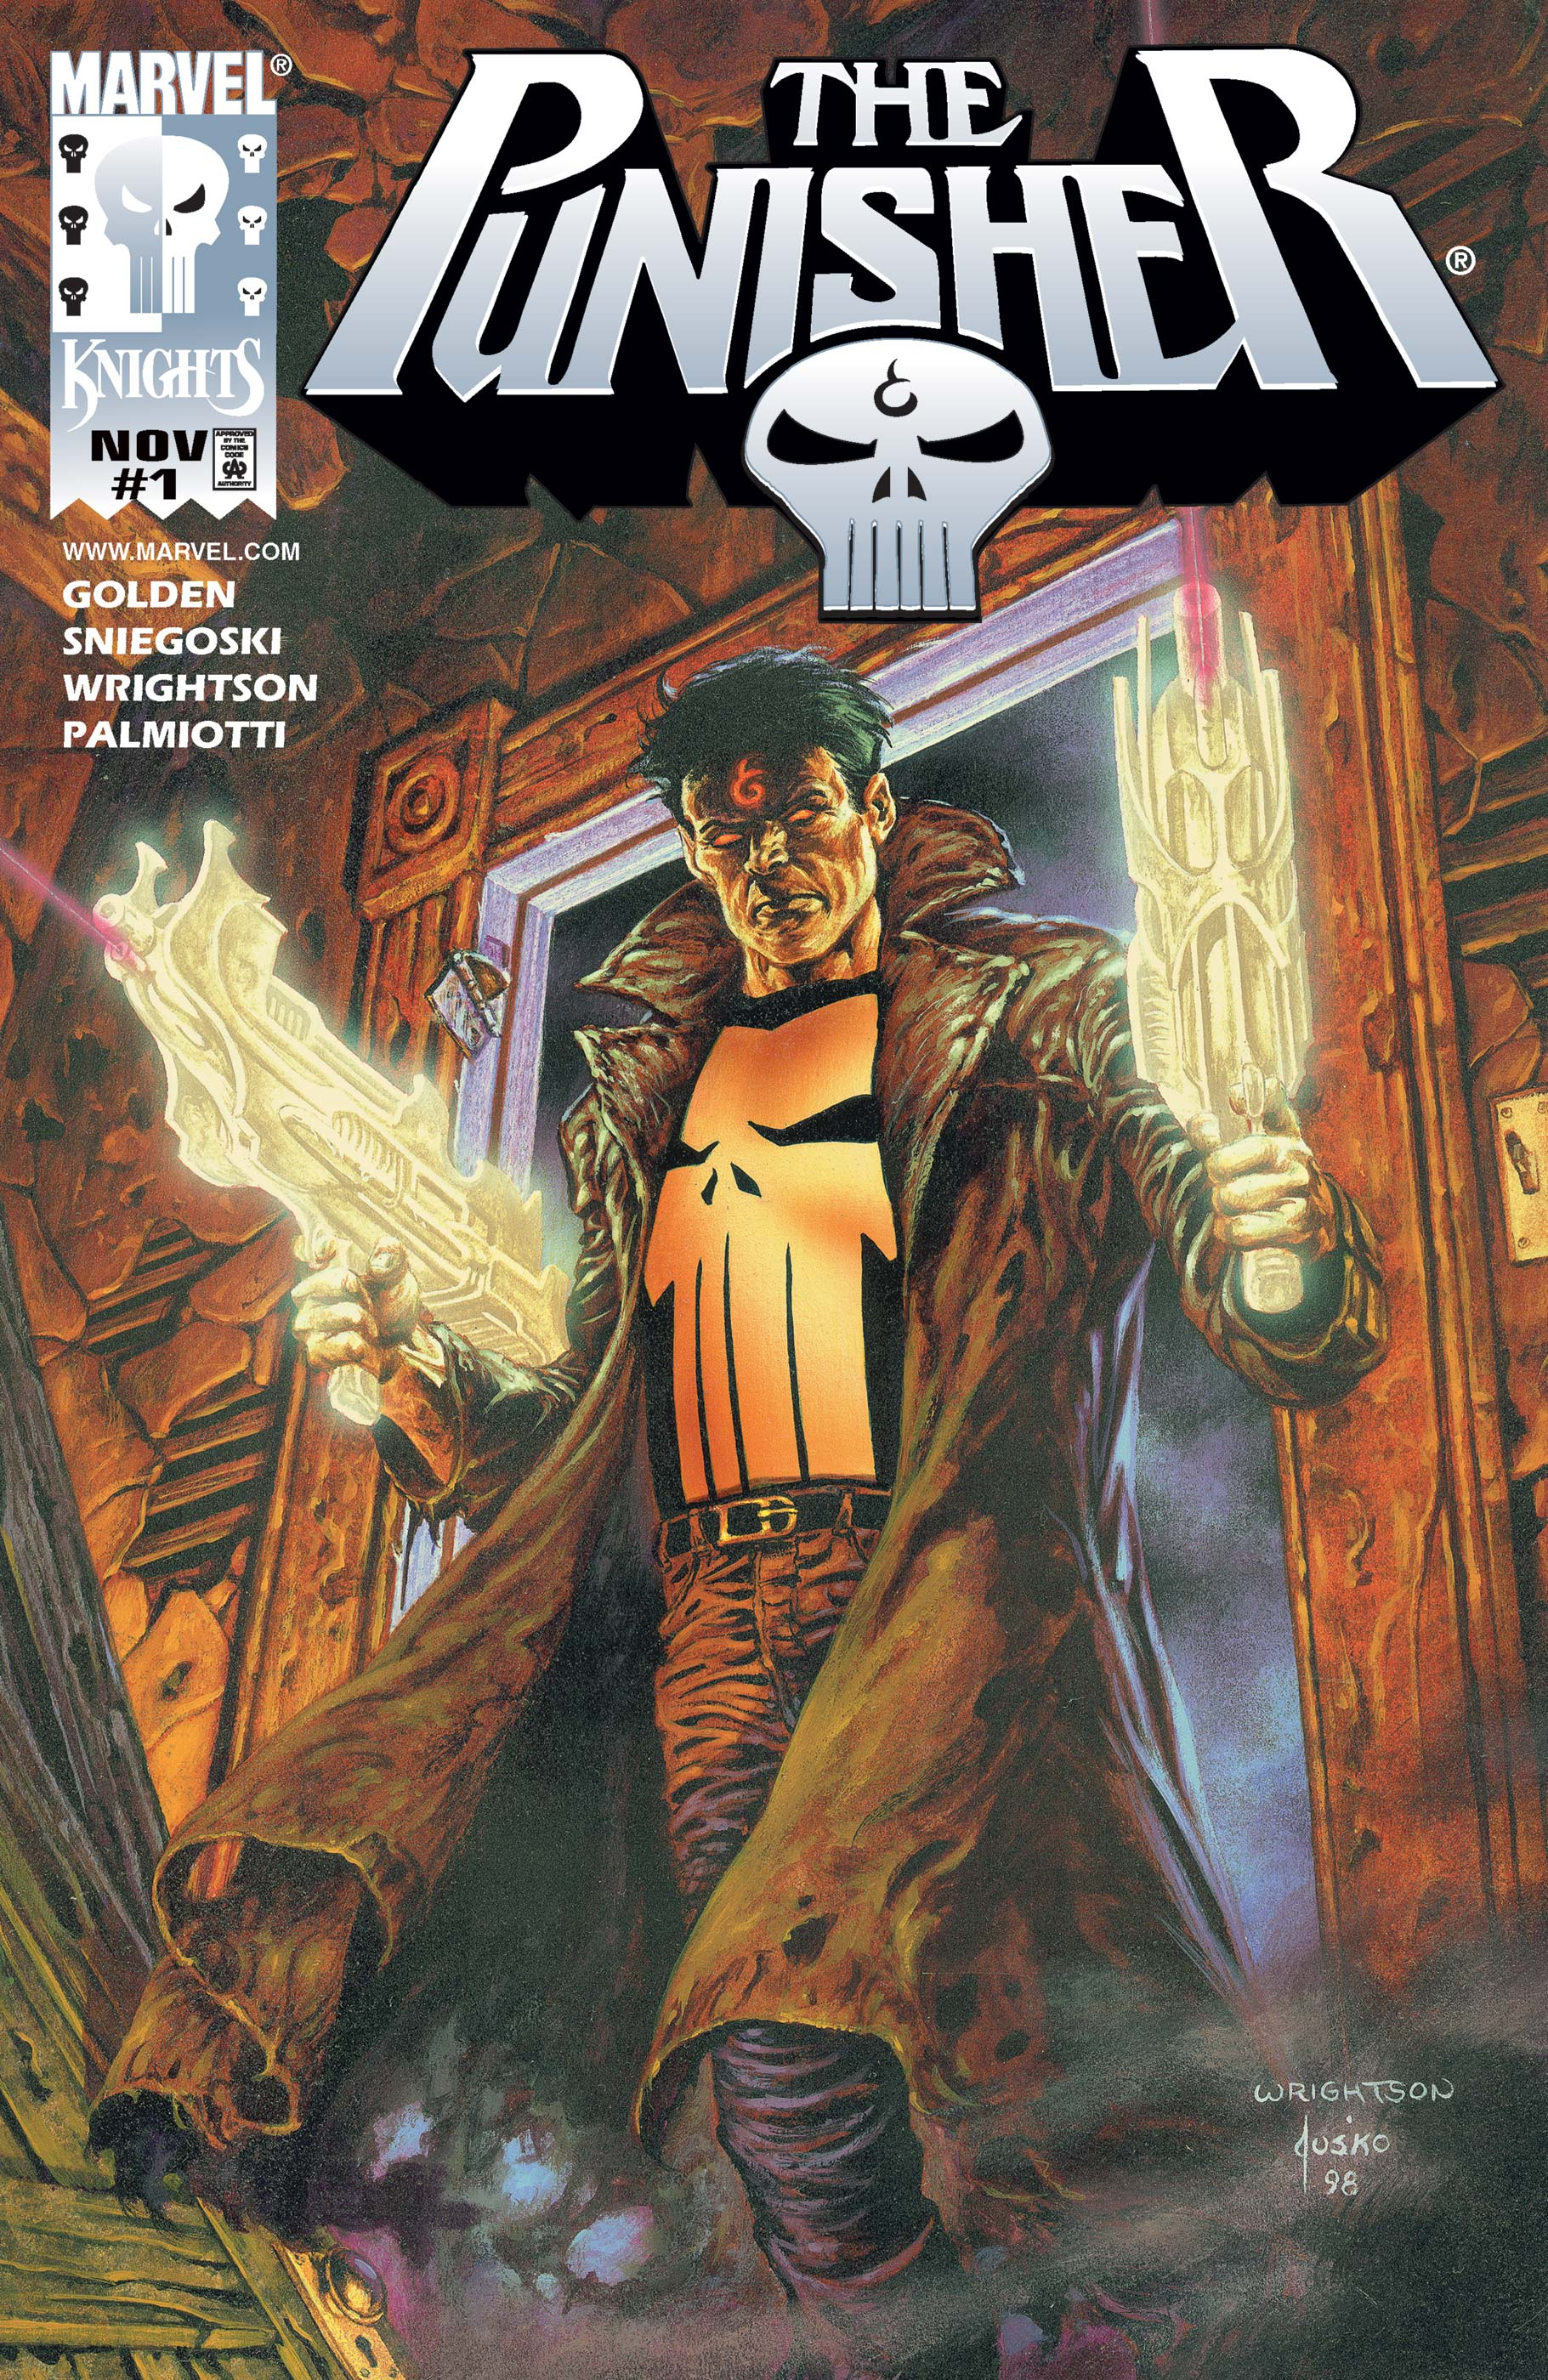 The Punisher (1998) #1